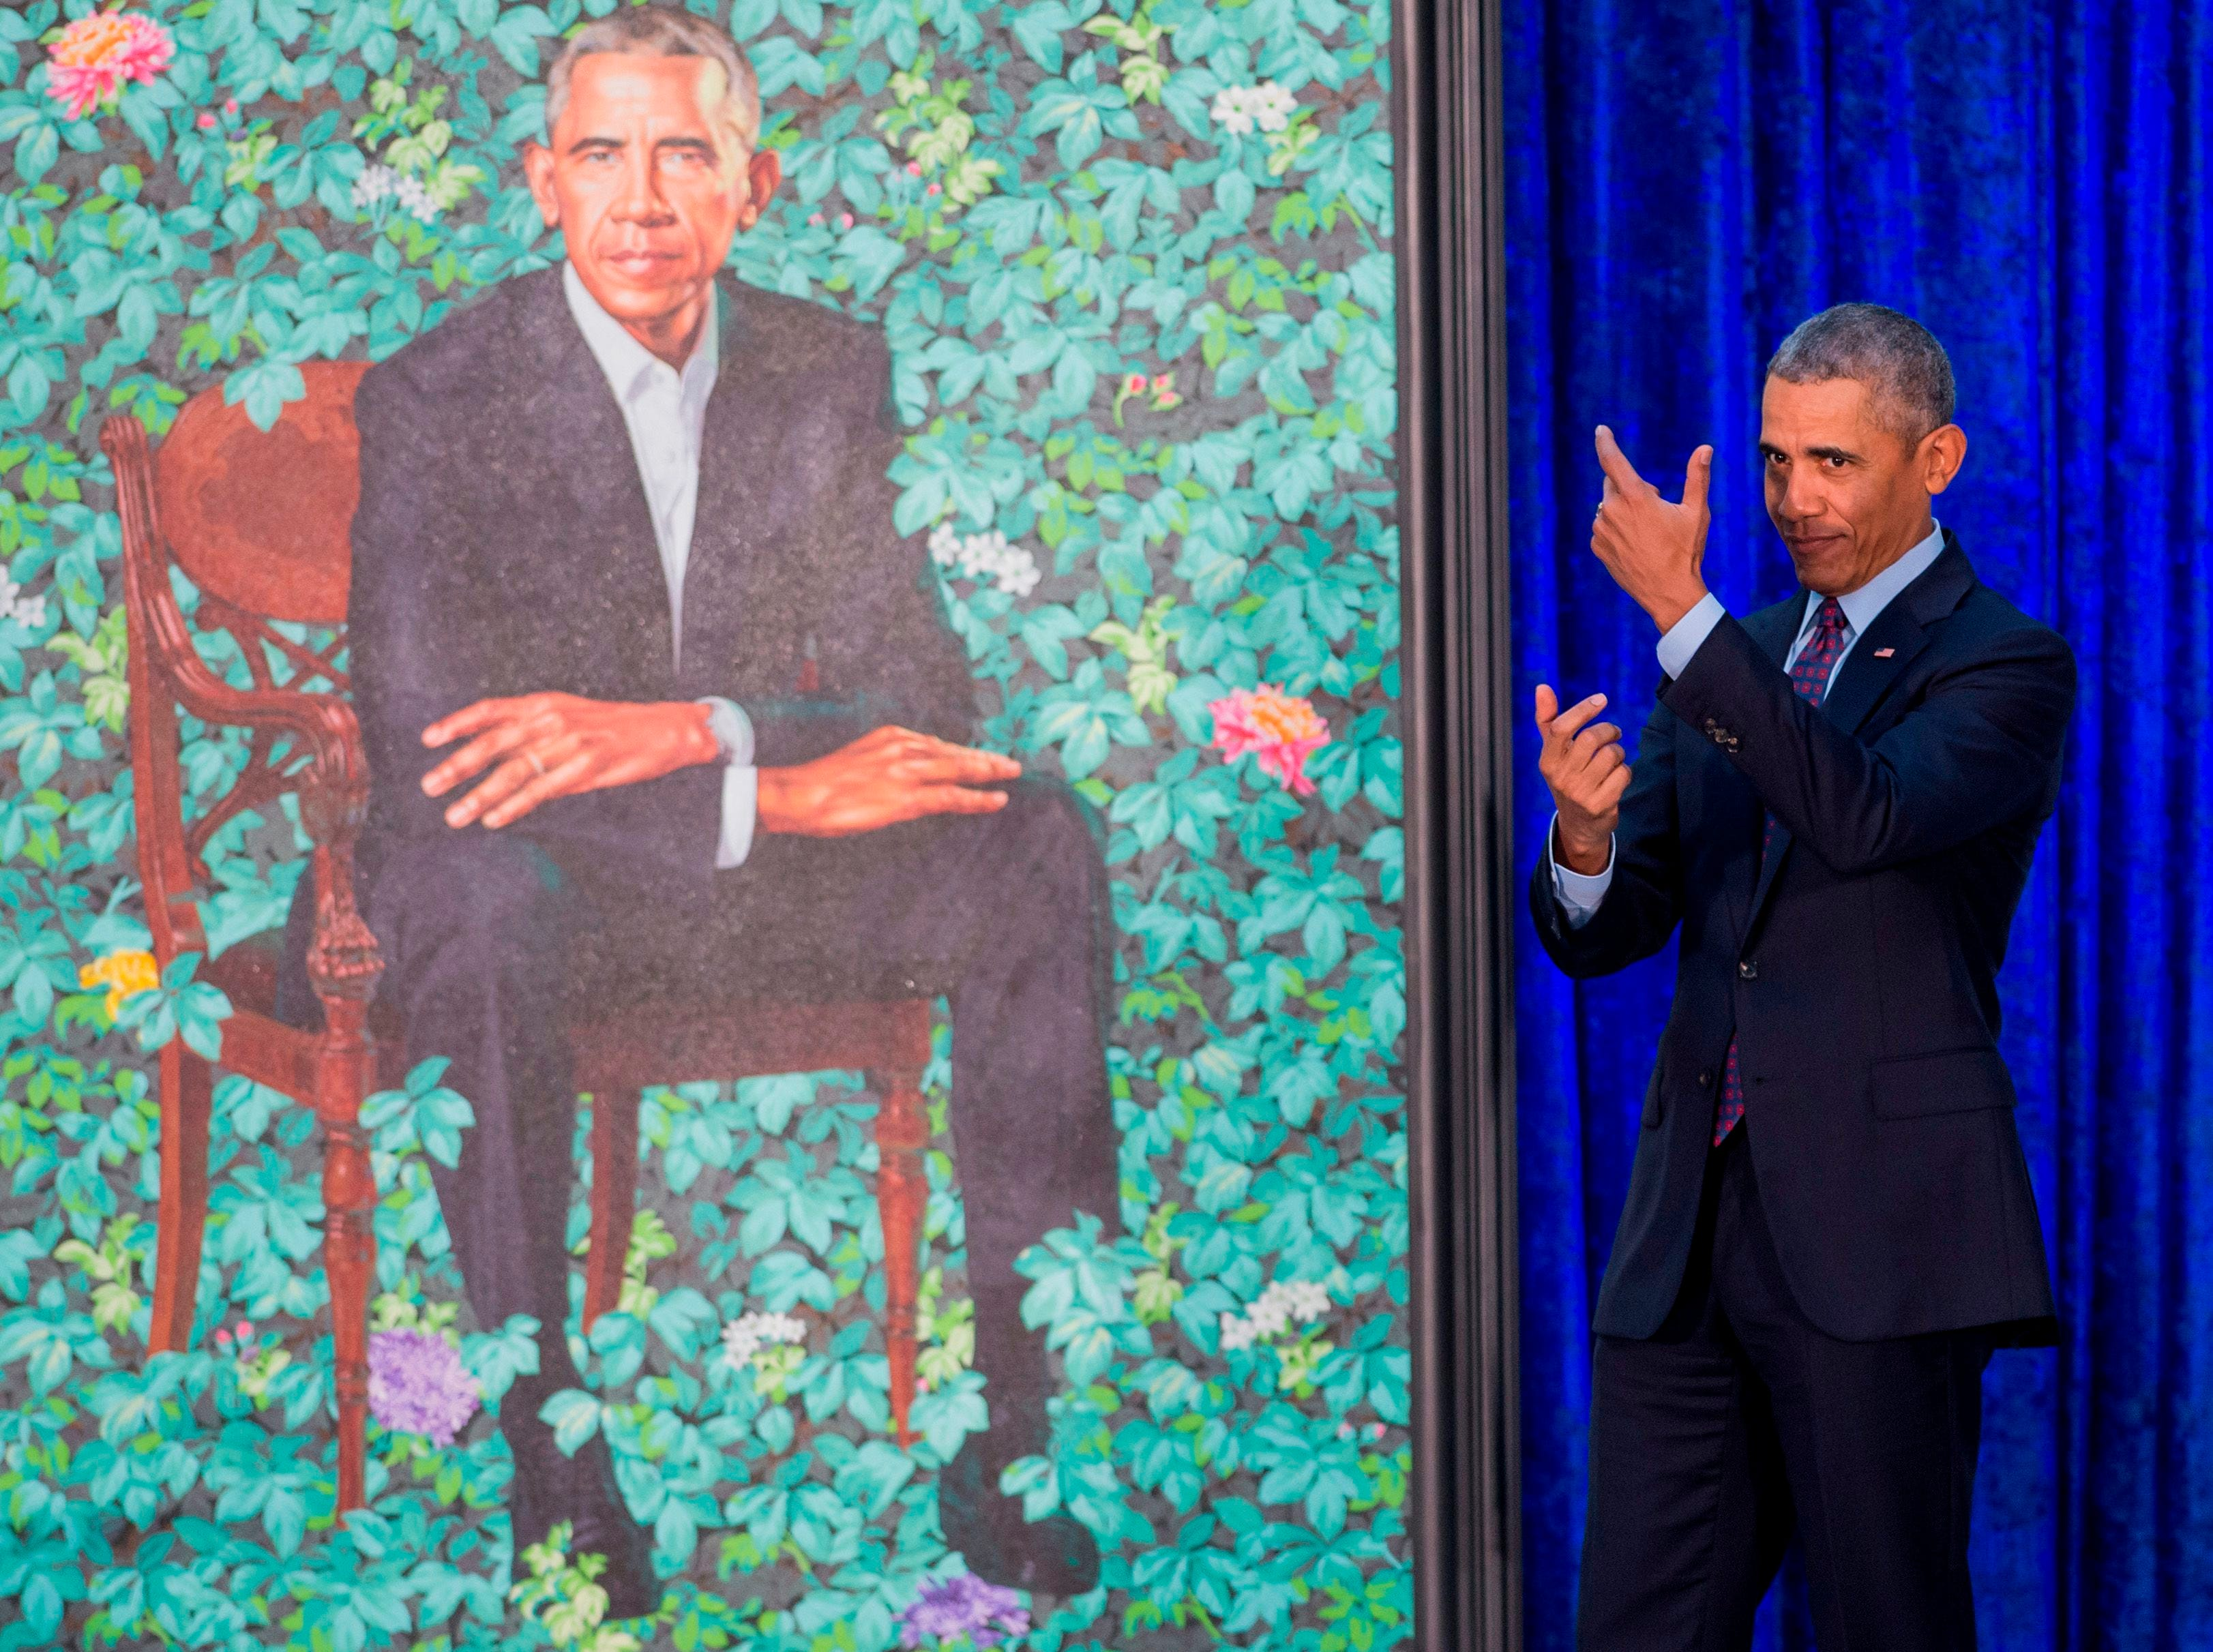 Feb. 12, 2018: Former President Barack Obama pretends to take a selfie as he looks at his portrait by artist Kehinde Wiley during the unveiling at the Smithsonian's National Portrait Gallery in Washington.